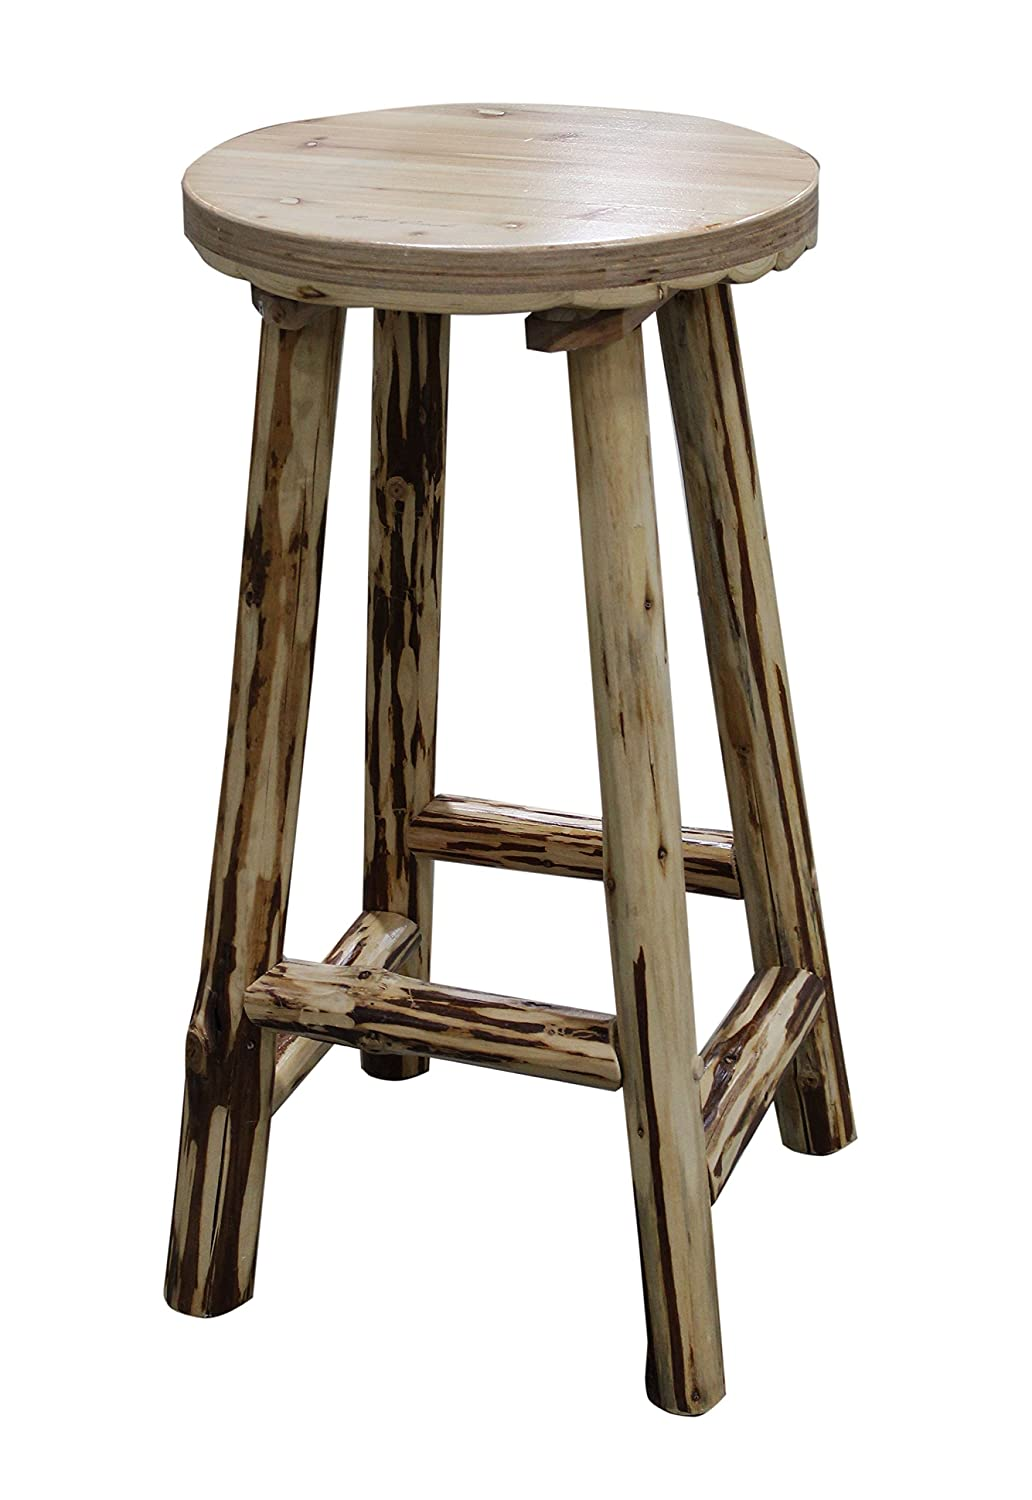 17 Best Wooden Bar Stools Natural Rustic Wood Kitchen  : 81SyBRQ2BWILSL1500 from www.bestlyy-curatedbyquality.co size 1032 x 1500 jpeg 144kB